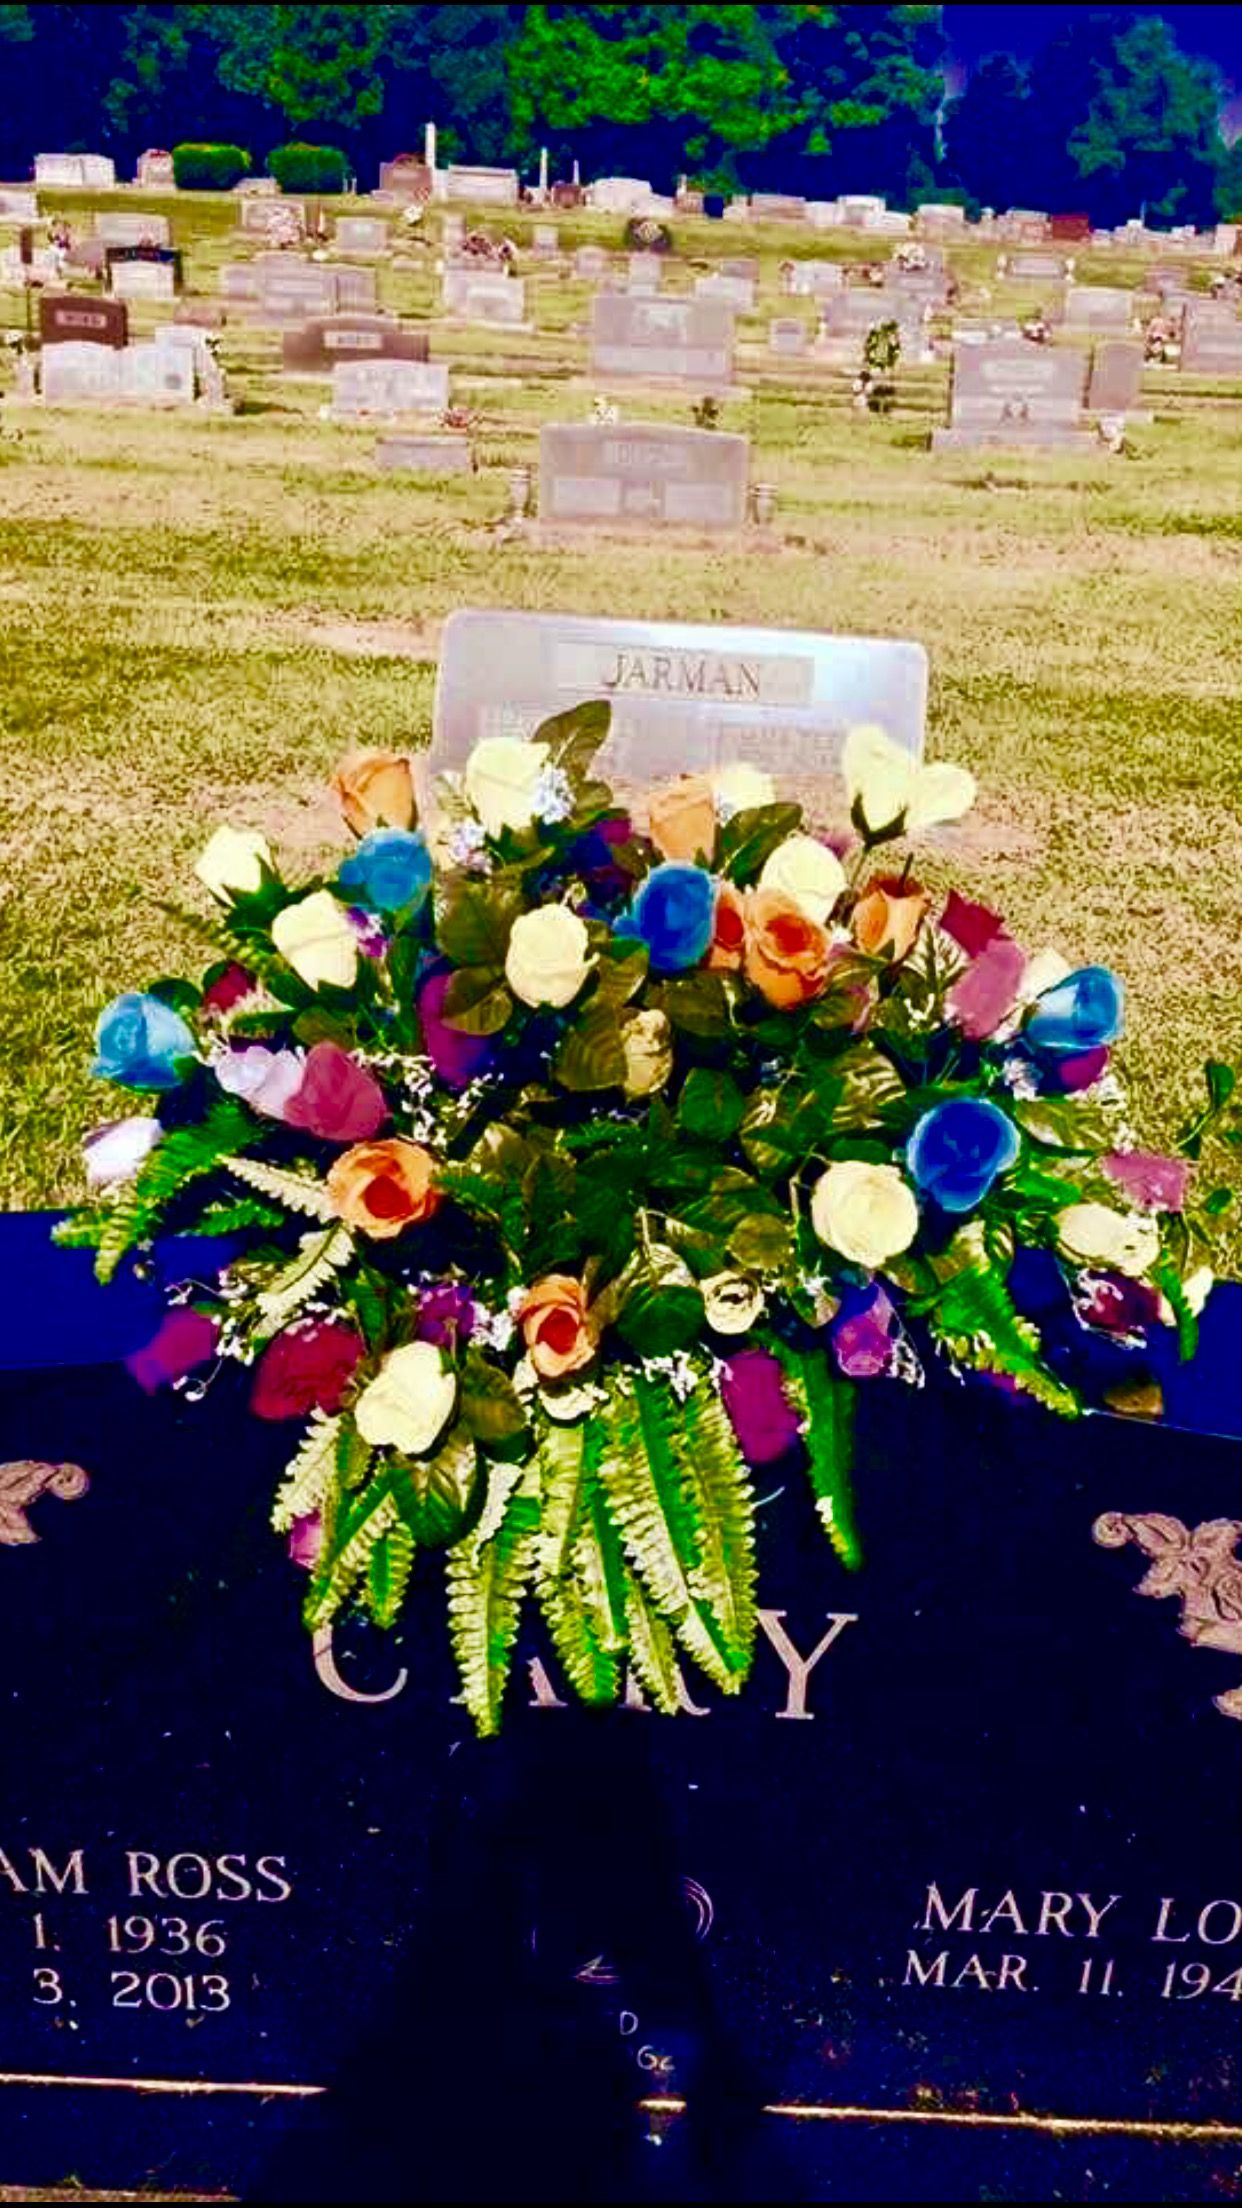 Flowers for my dads headstone saddleflowers funeralflowers flowers for my dads headstone saddleflowers funeralflowers funeral flowers cemetery izmirmasajfo Images